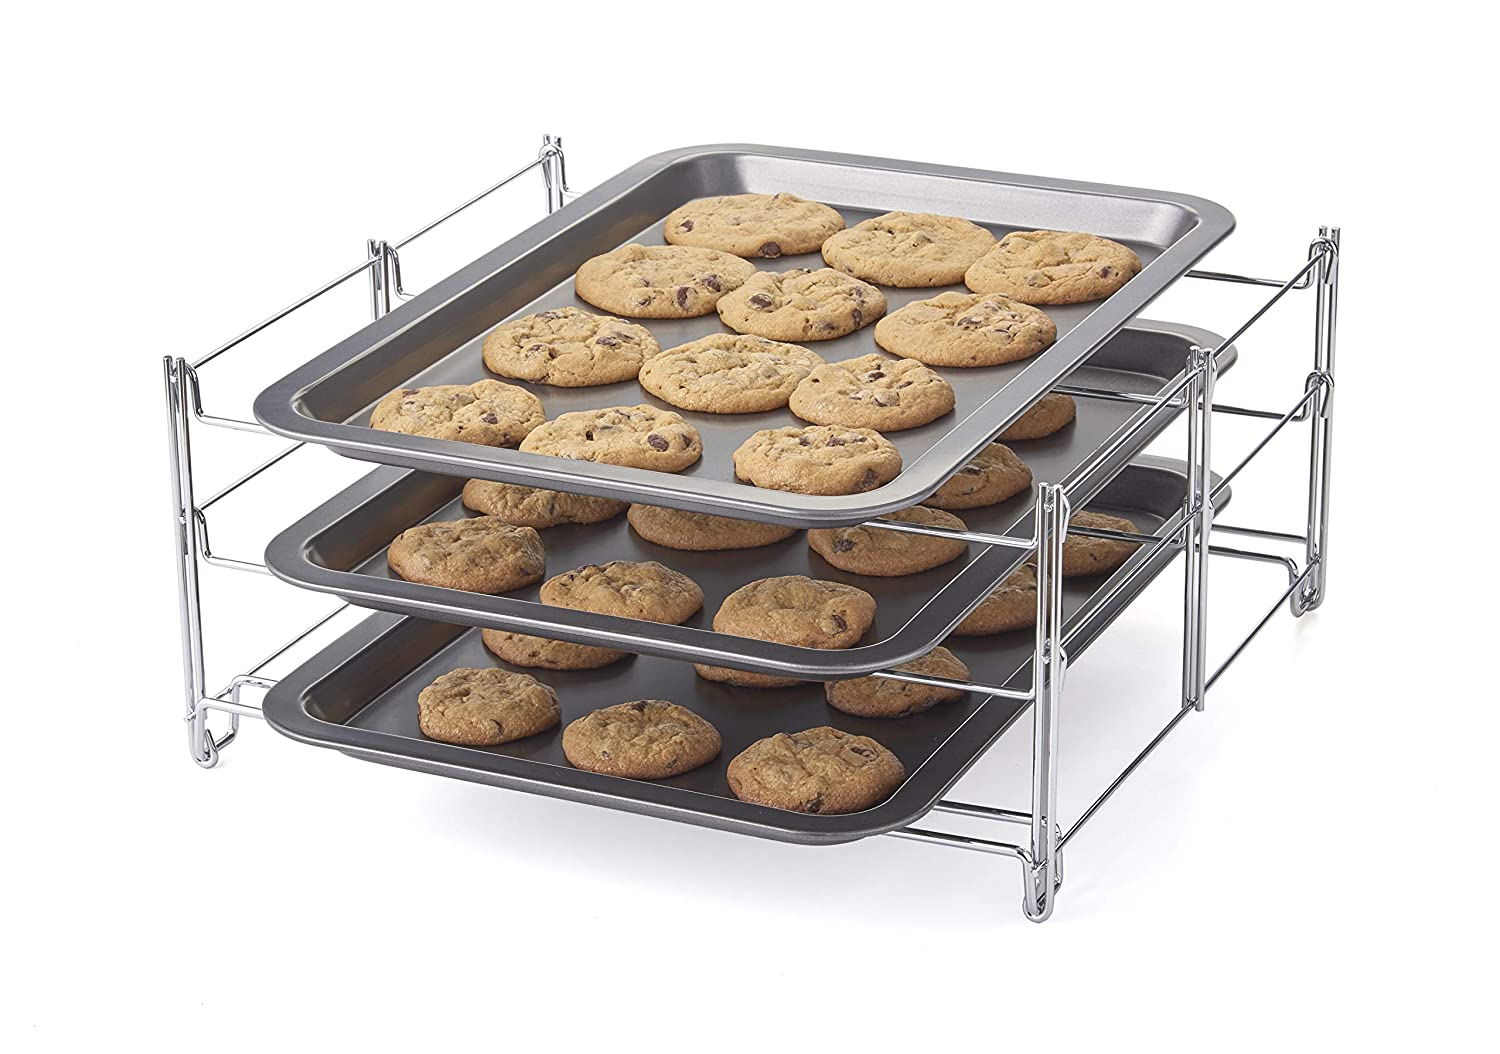 Betty Crocker Tier Insert with 3 Non-Stick Cookie Sheets Baking Rack One Size Charcoal and Chrome Nifty 3-Tier Baking Rack Insert